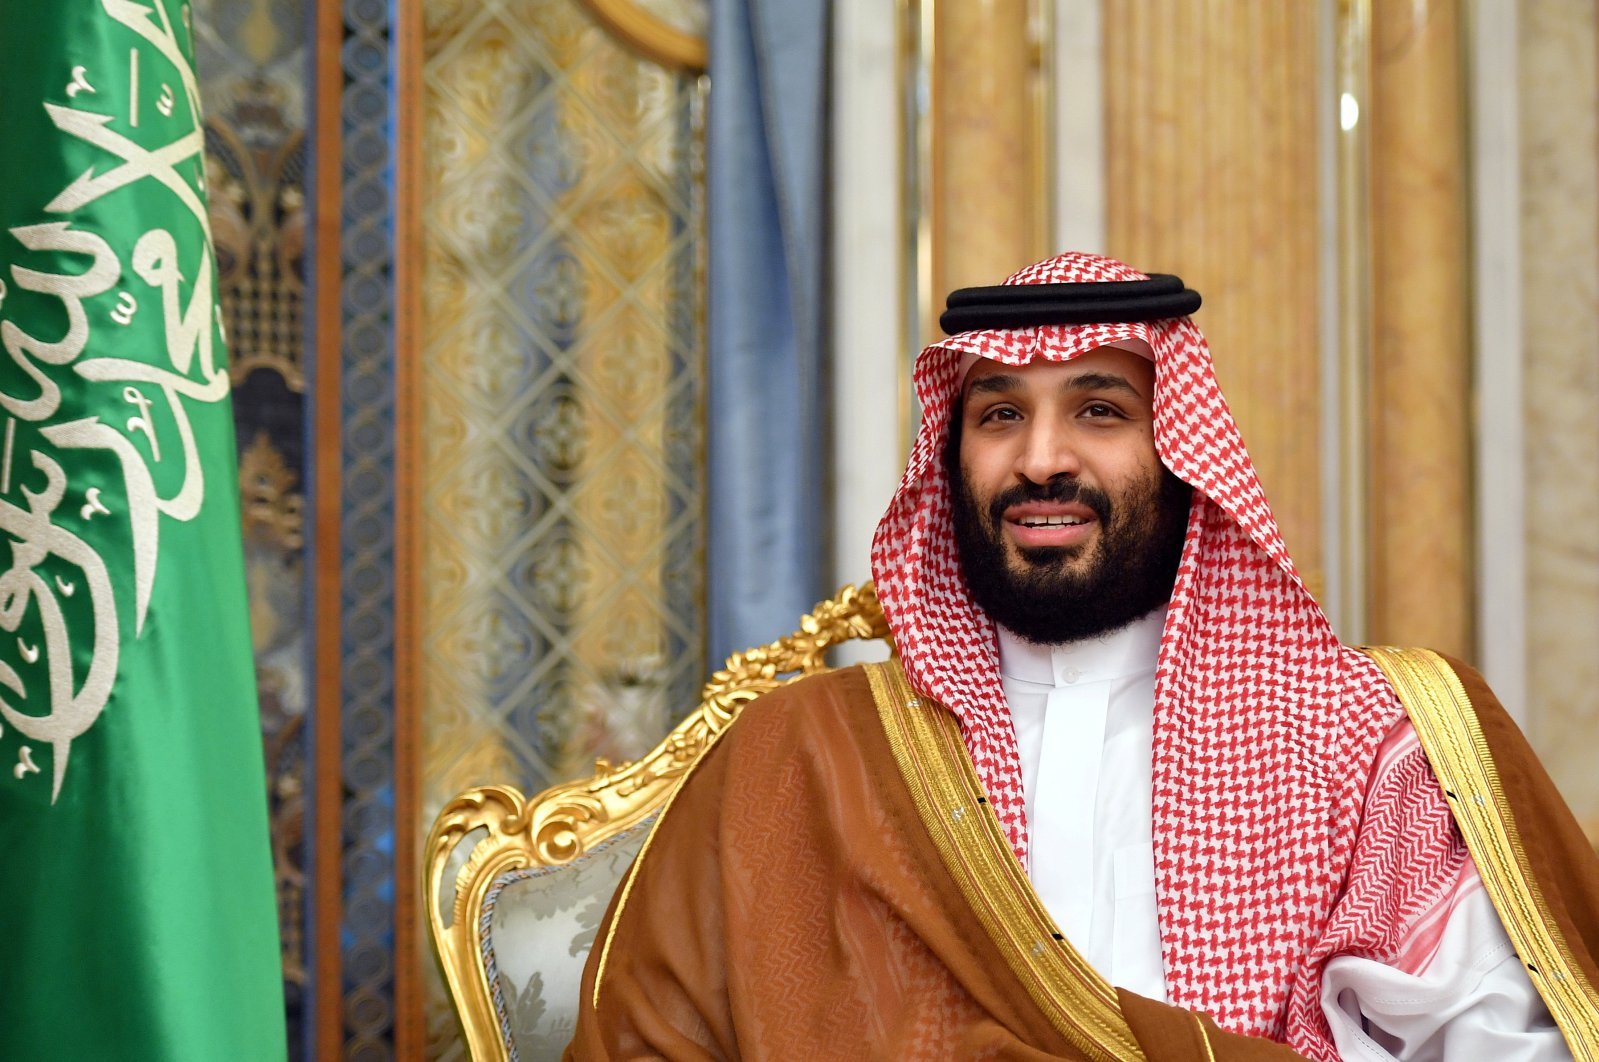 Saudi Arabia's Crown Prince Mohammed bin Salman attends a meeting with former U.S. Secretary of State Mike Pompeo in Jeddah, Saudi Arabia, Sept.18, 2019. (Reuters Photo)